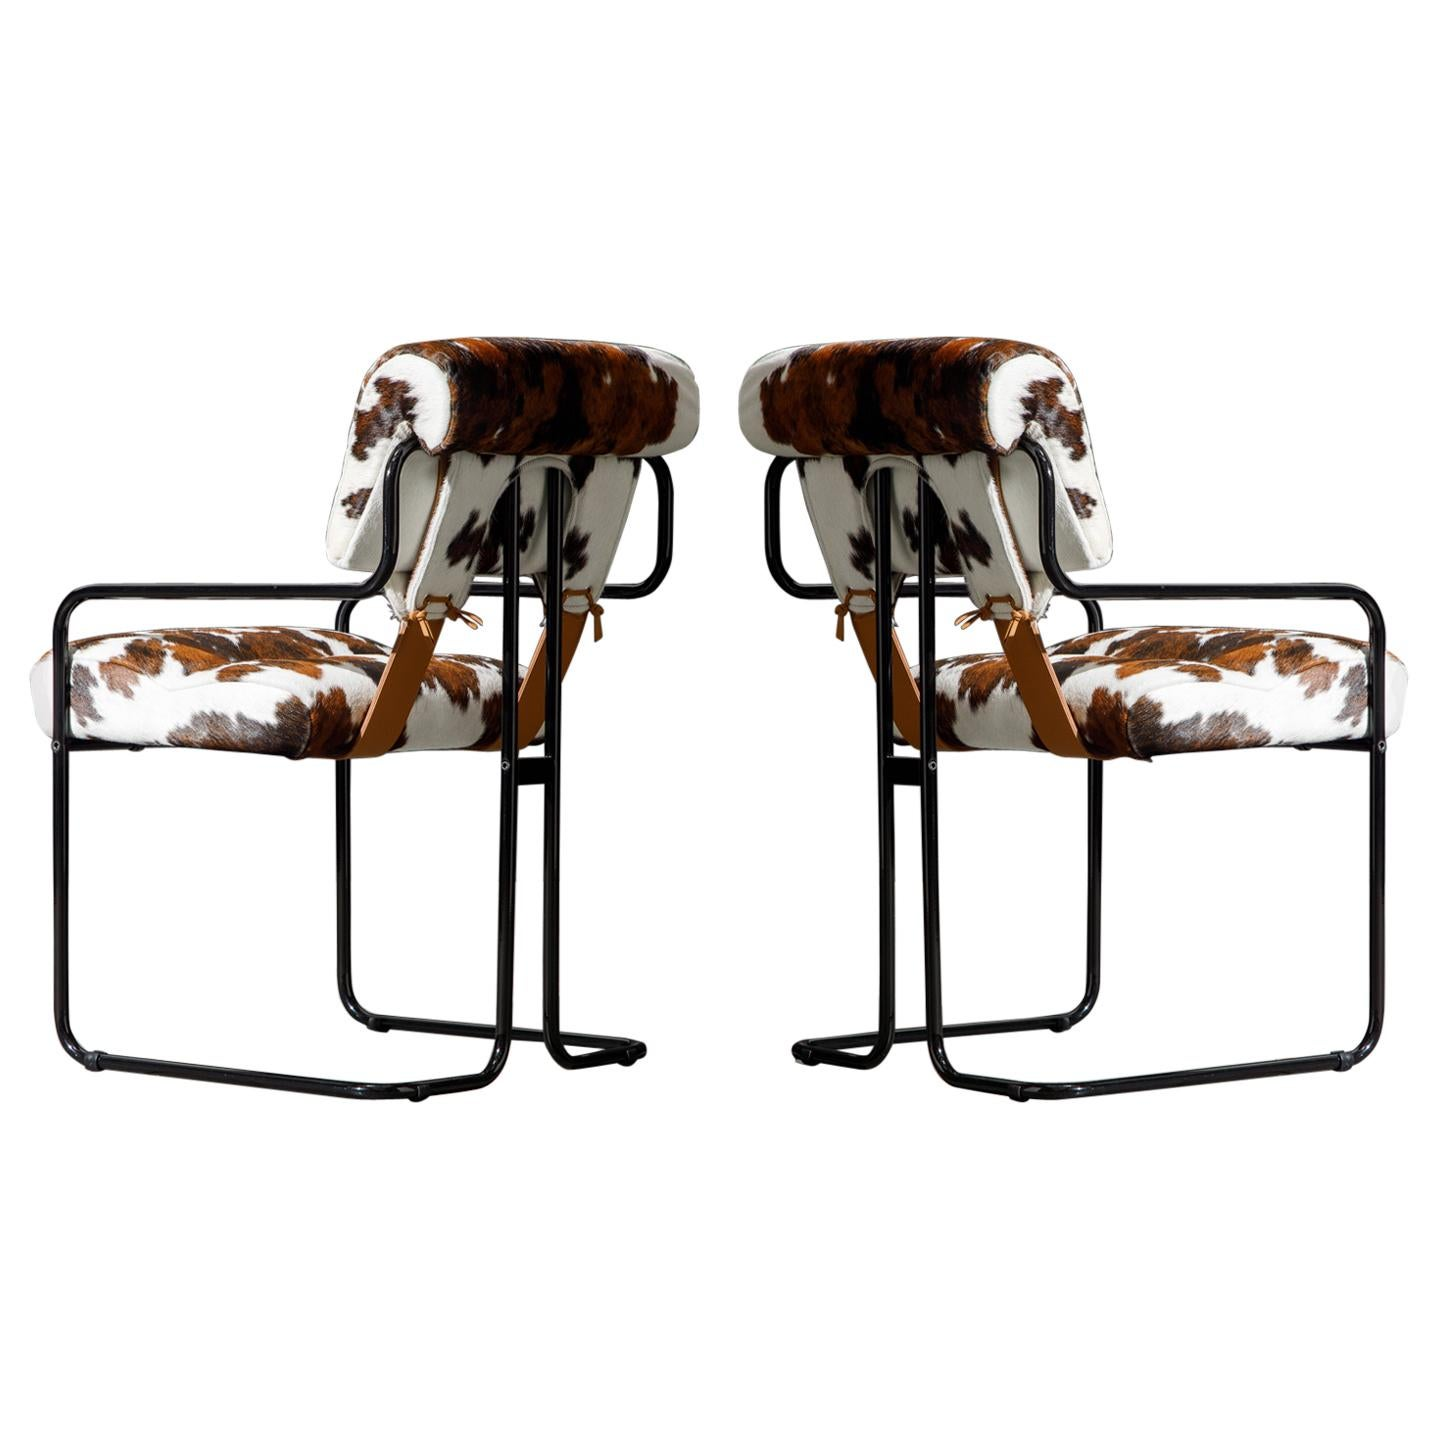 Pair of Cowhide Leather Tucroma Armchairs by Guido Faleschini for Mariani, New